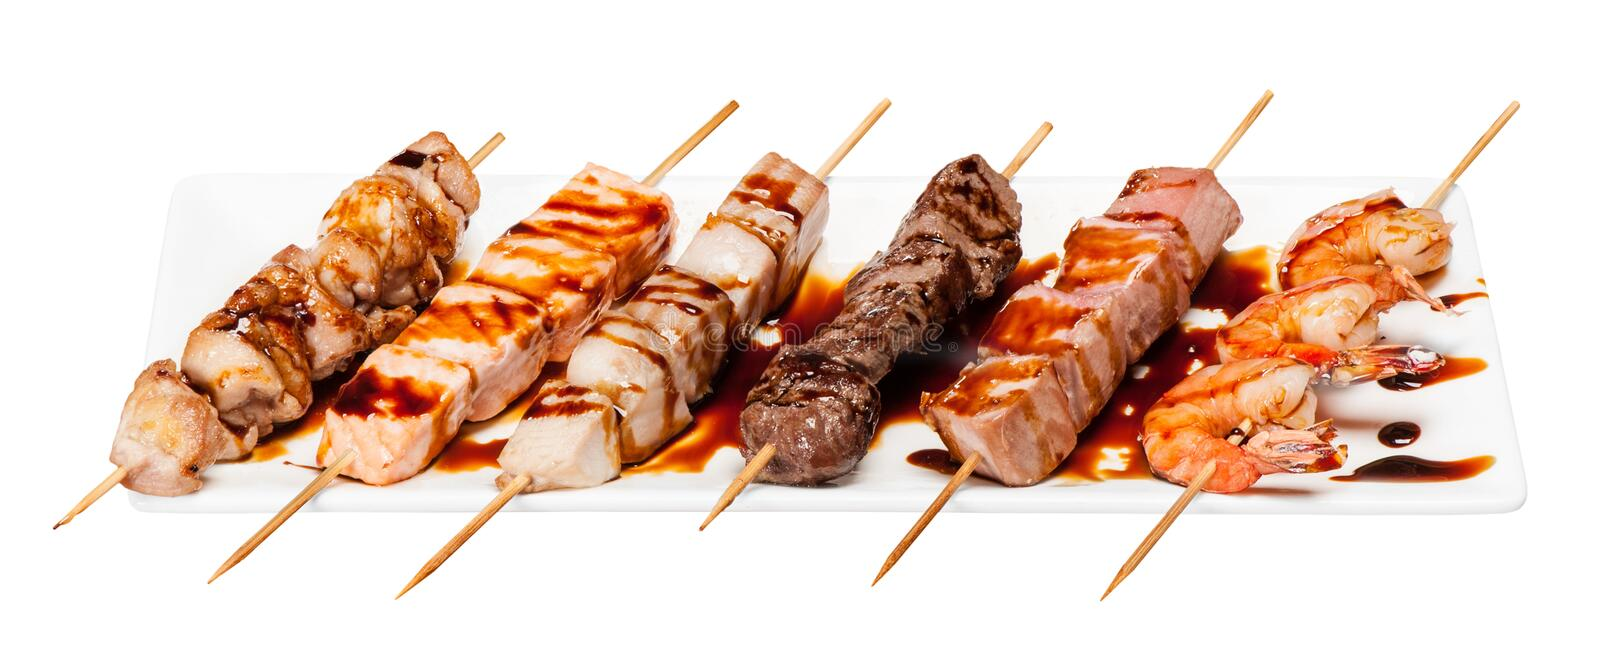 Grupo de shashlik diferente do no espeto dos espetos isolado no branco fotografia de stock